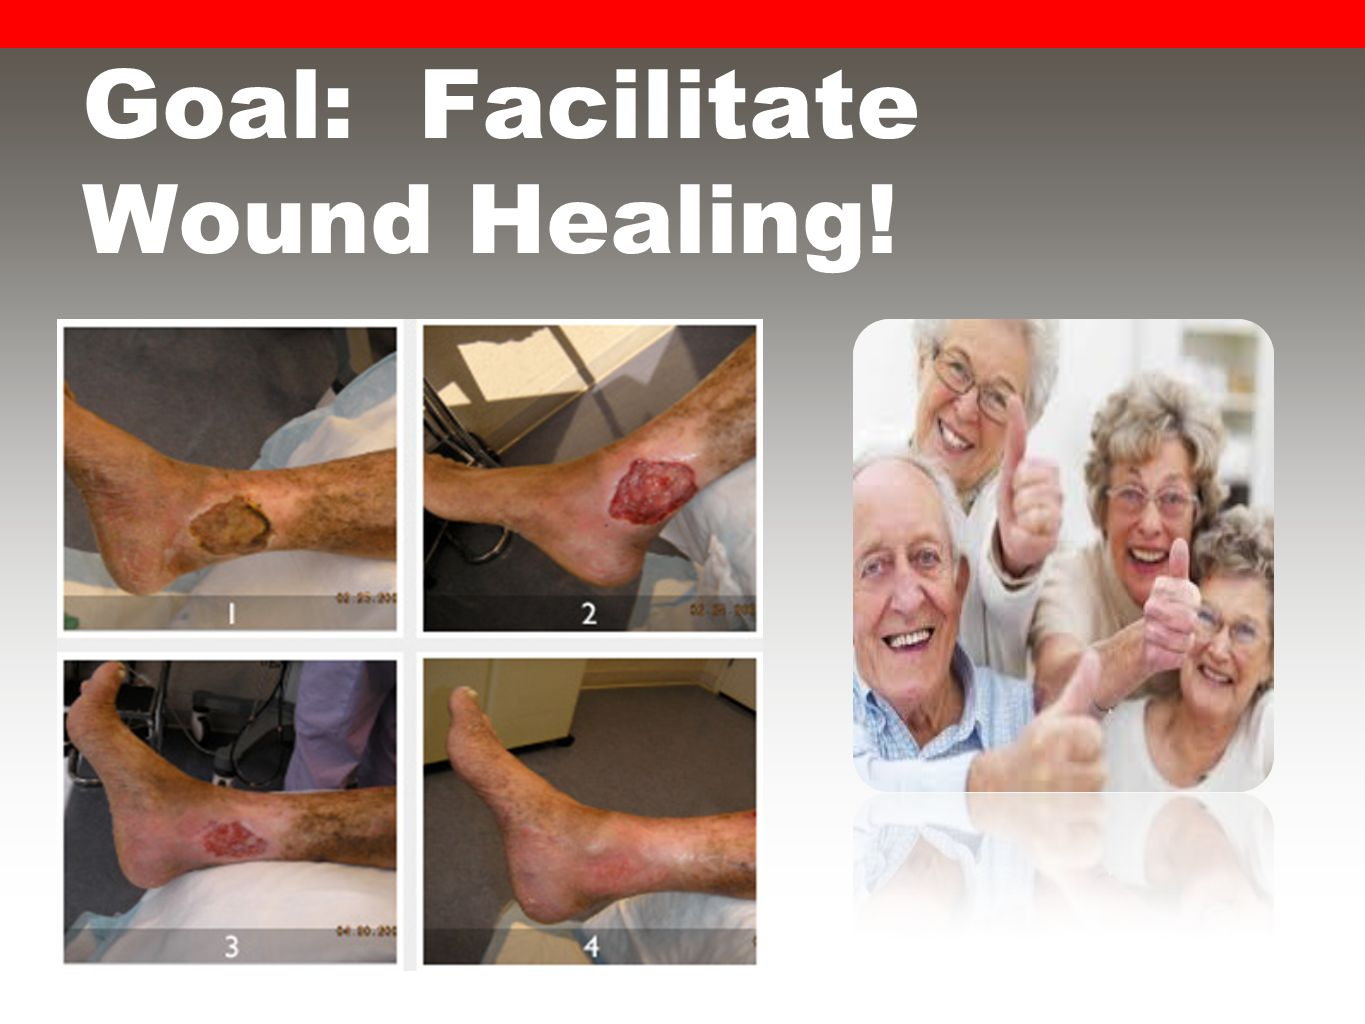 Goal: Facilitate Wound Healing!